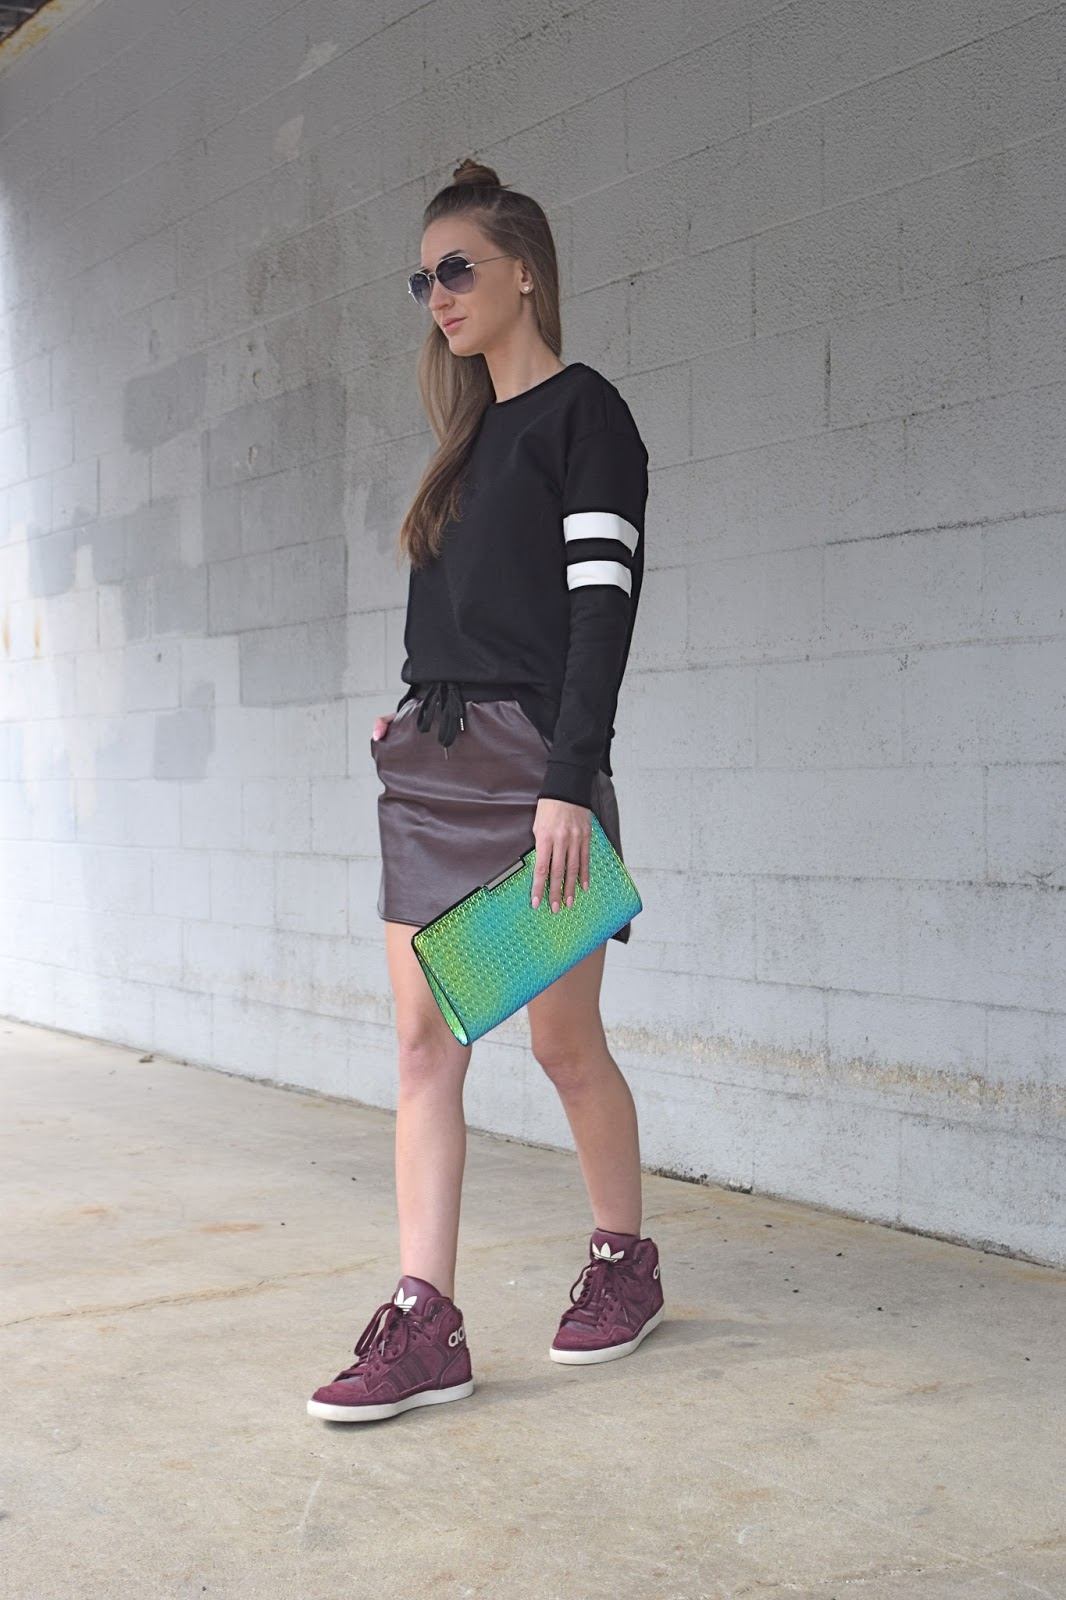 wearing a sporty chic casual look. Wearing adidas sneakers with skirt. Half bun look